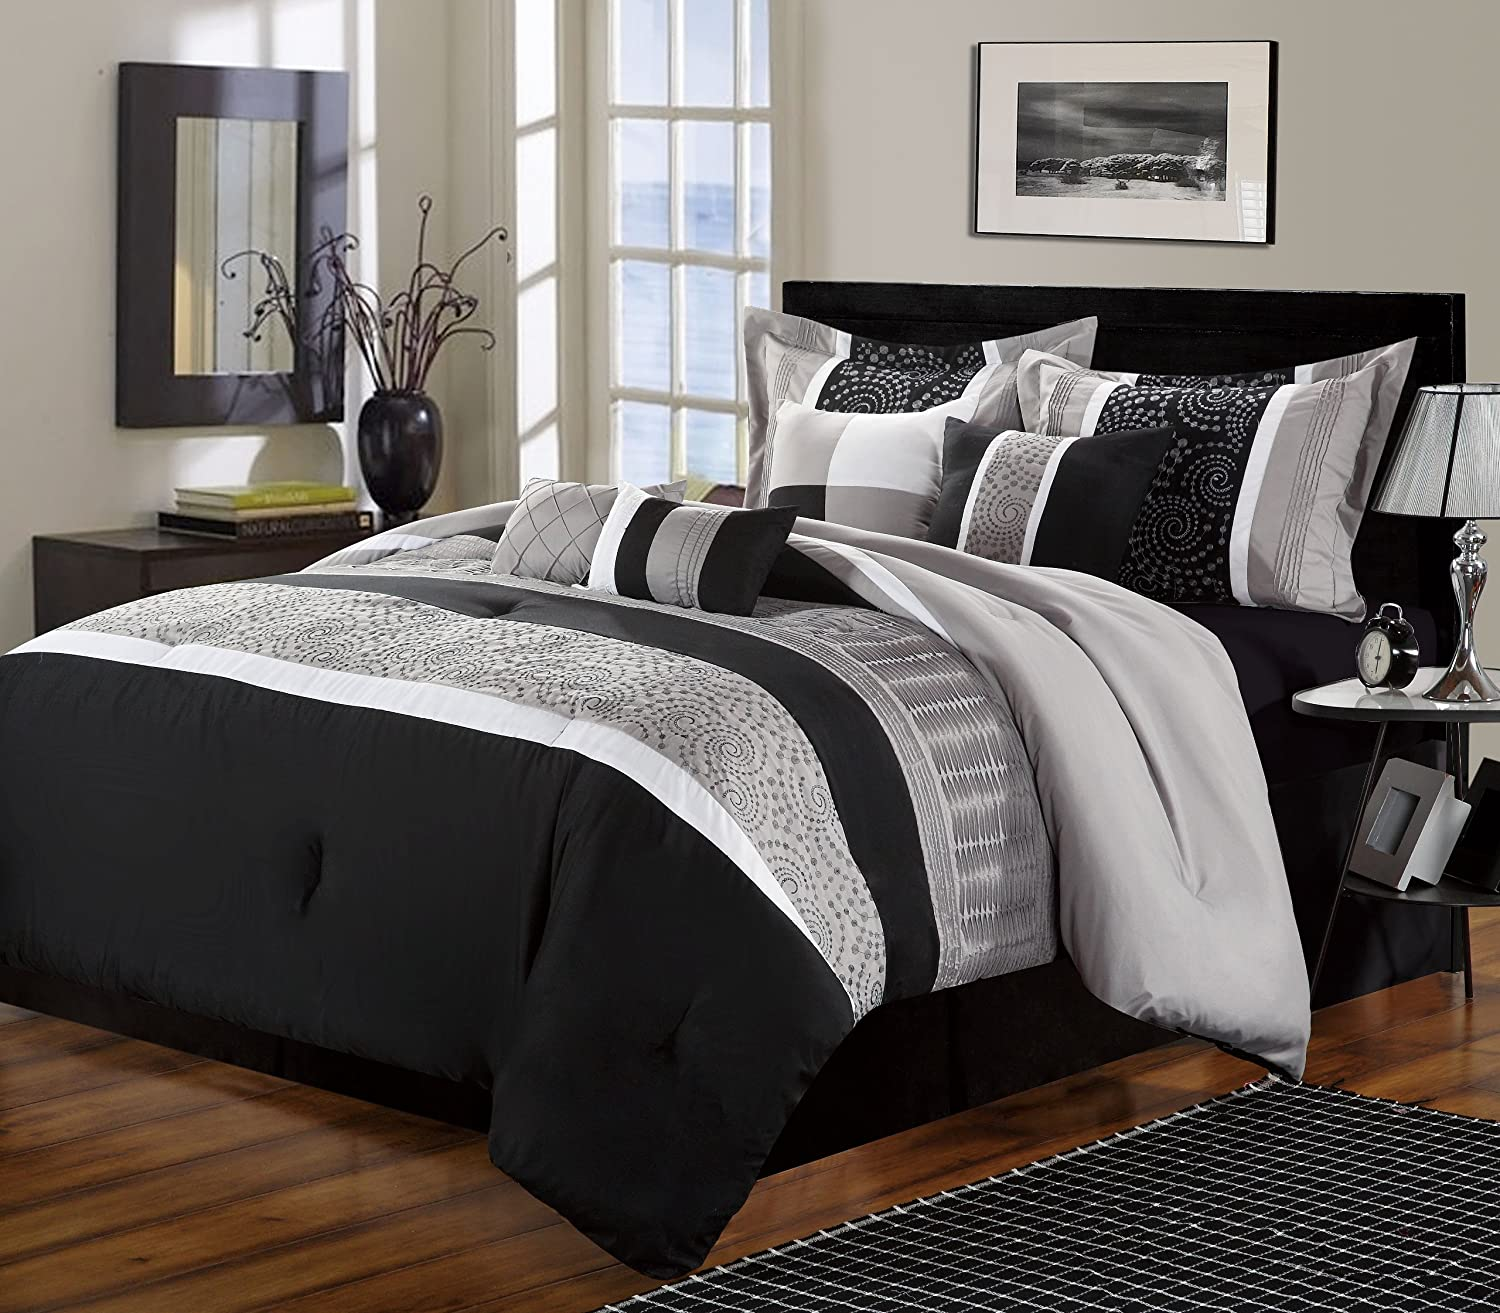 dp amazon com set home california sets kitchen king mi mirimar comforter grey zone